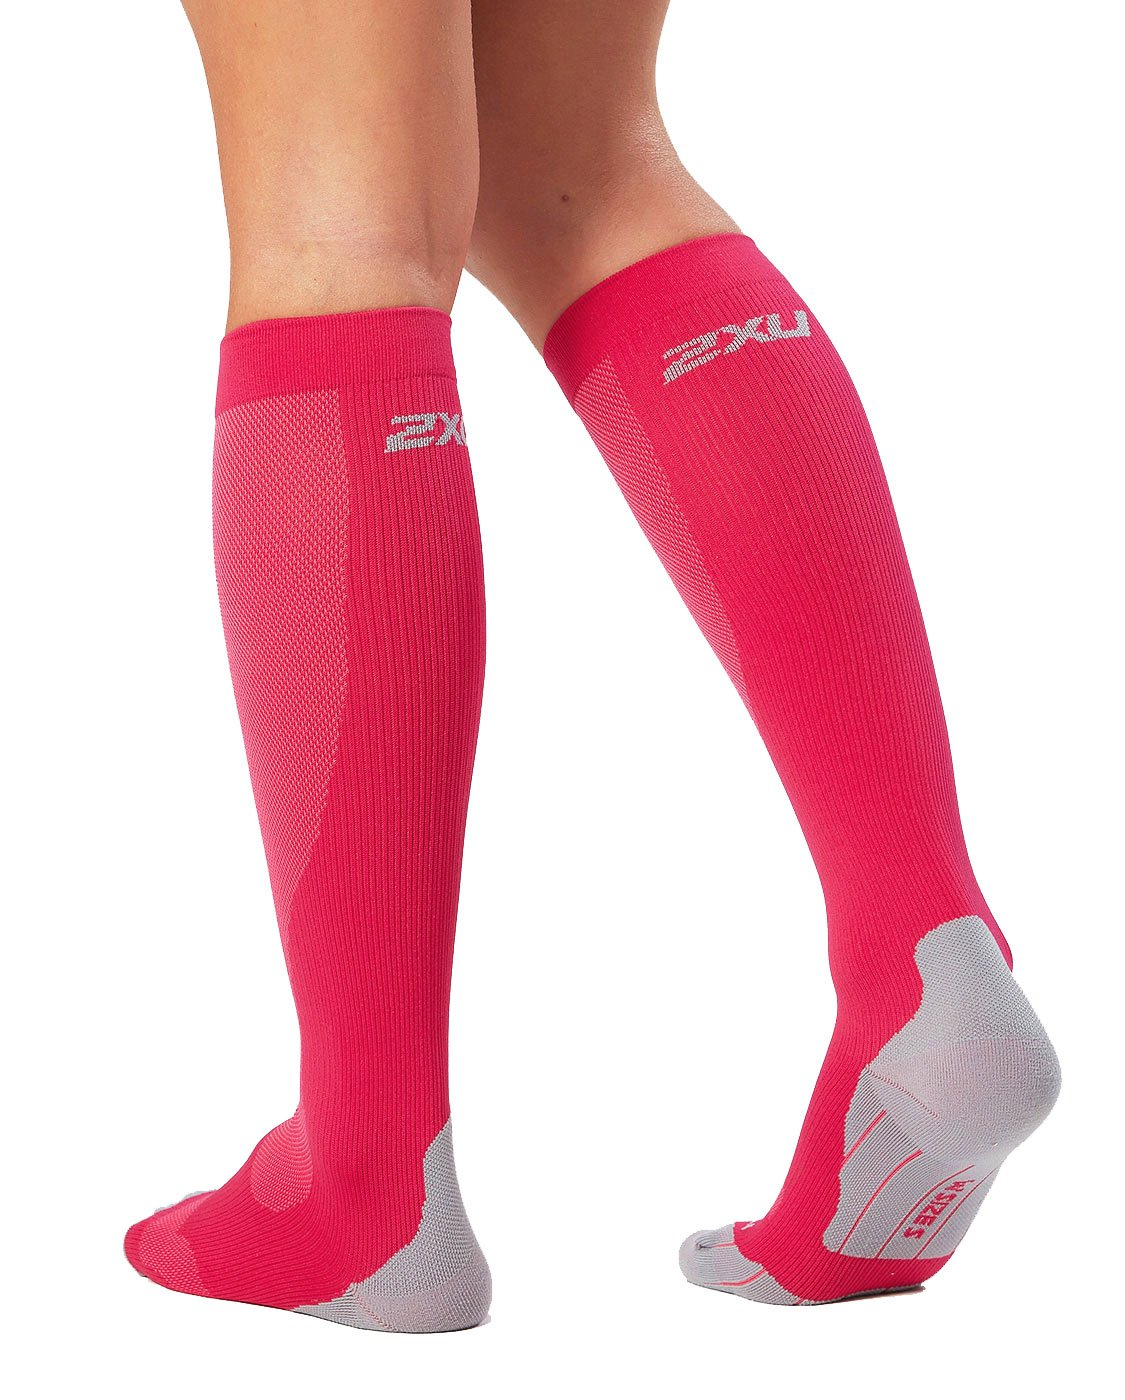 2XU Women's Performance Compression Run Sock, Hot Pink/Grey, X-Small by 2XU (Image #2)